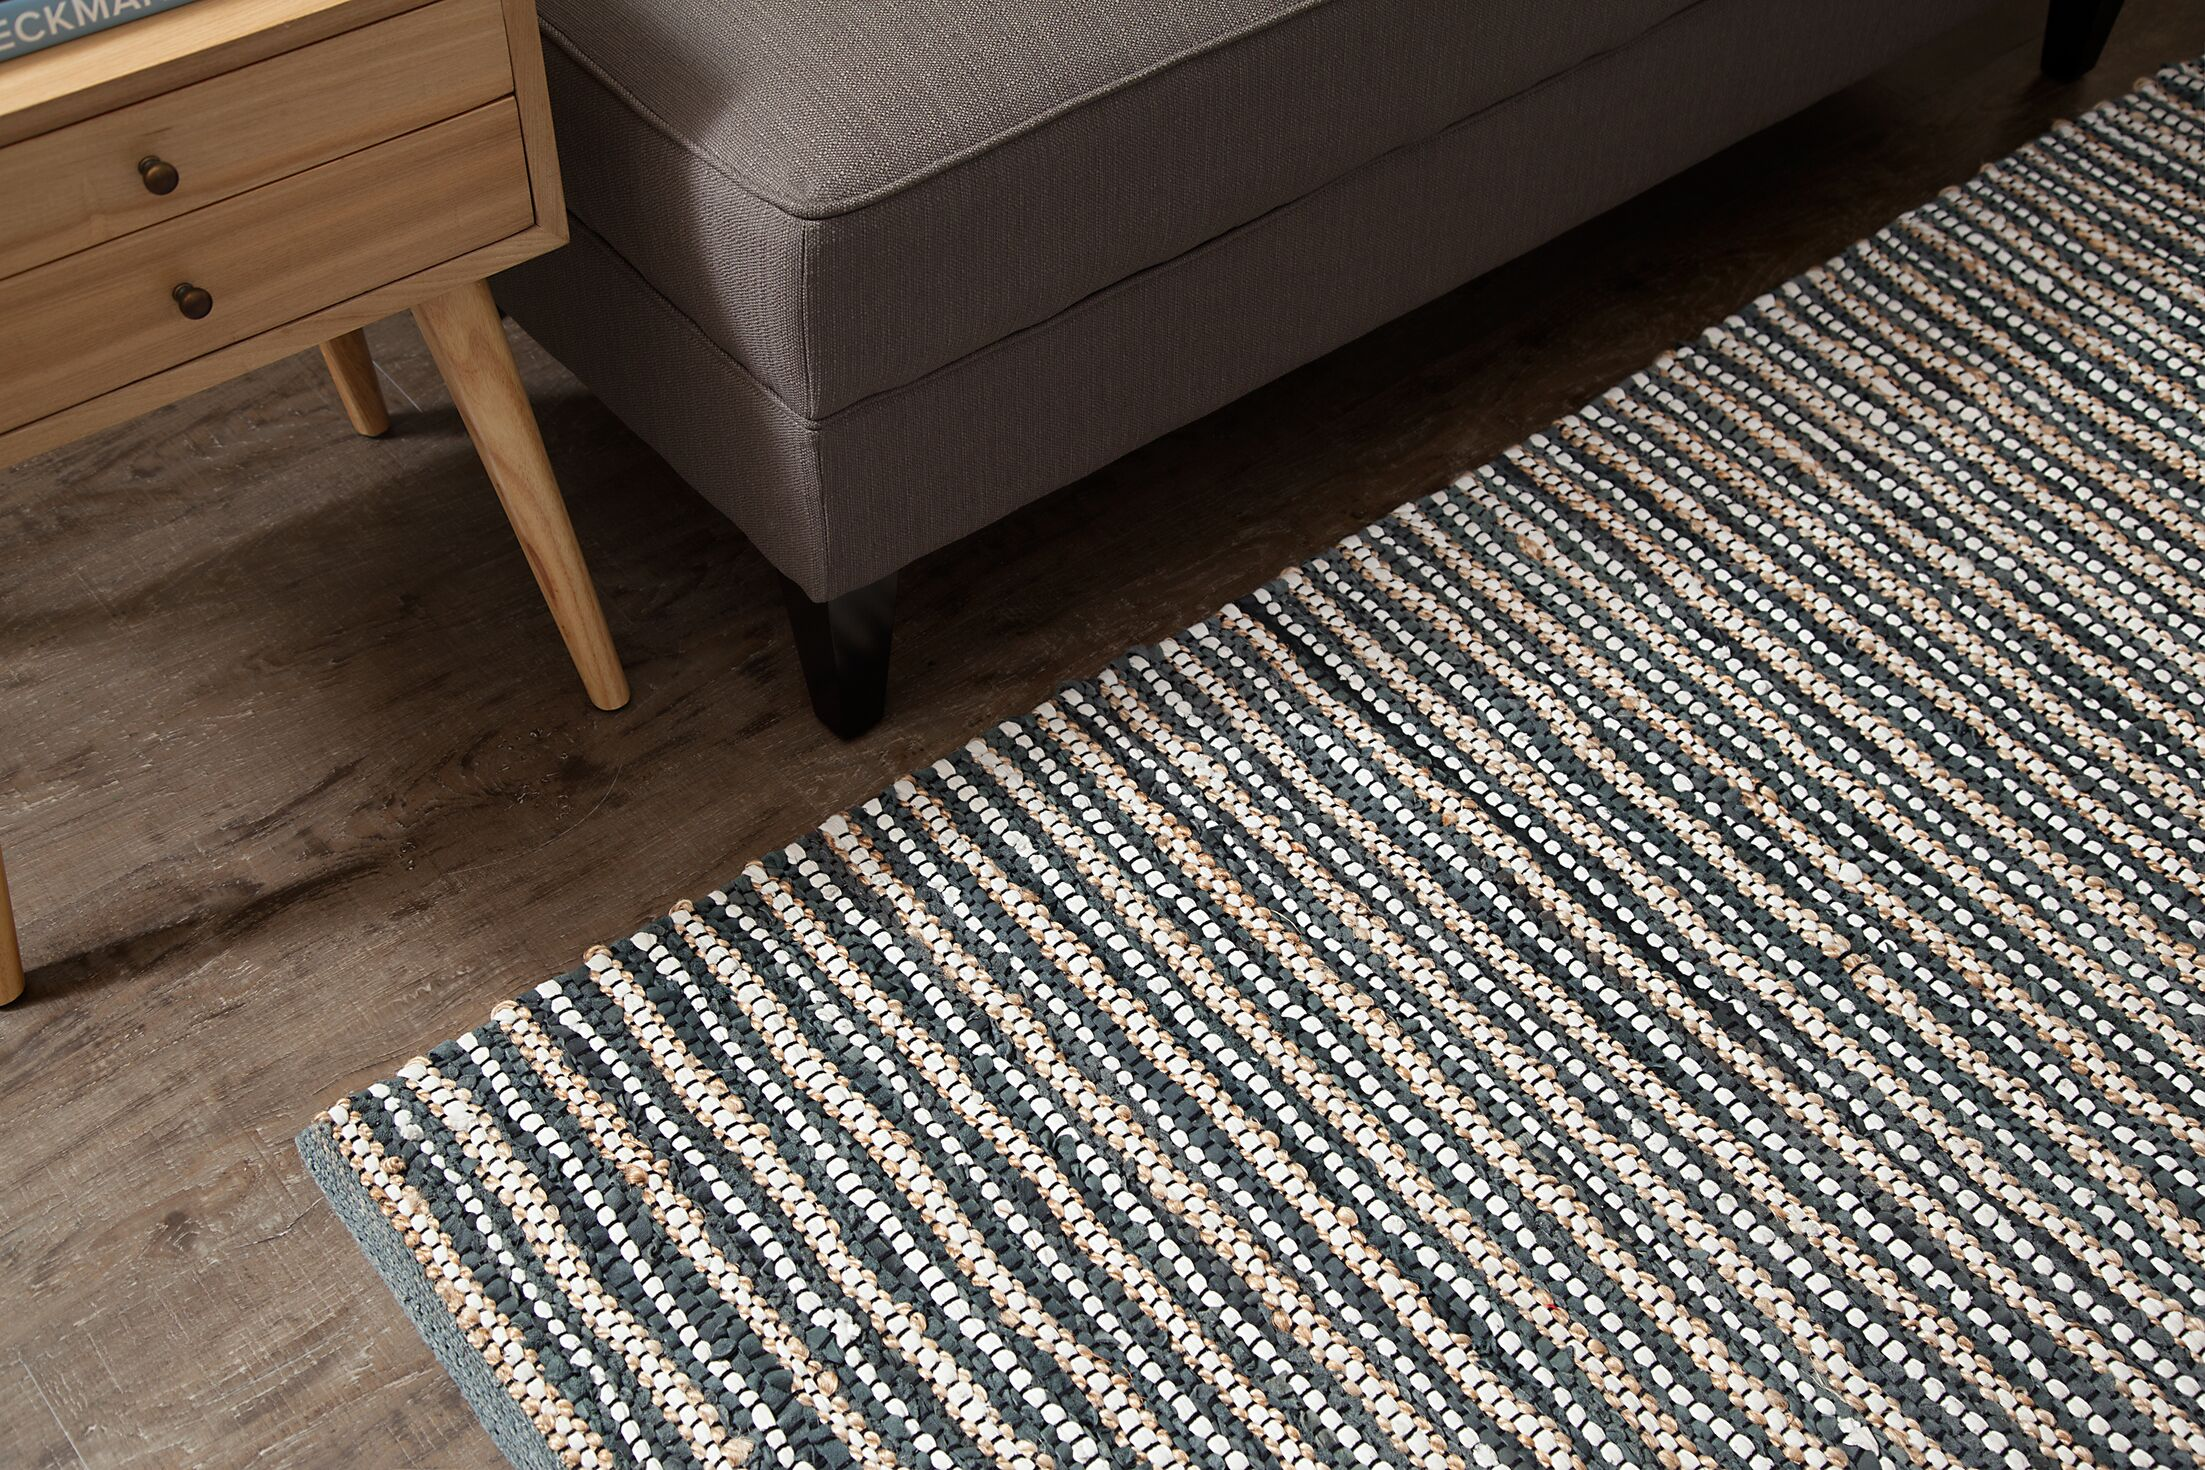 Holden Hand-Woven Smoky Blue Area Rug Rug Size: Rectangle 8' x 10'